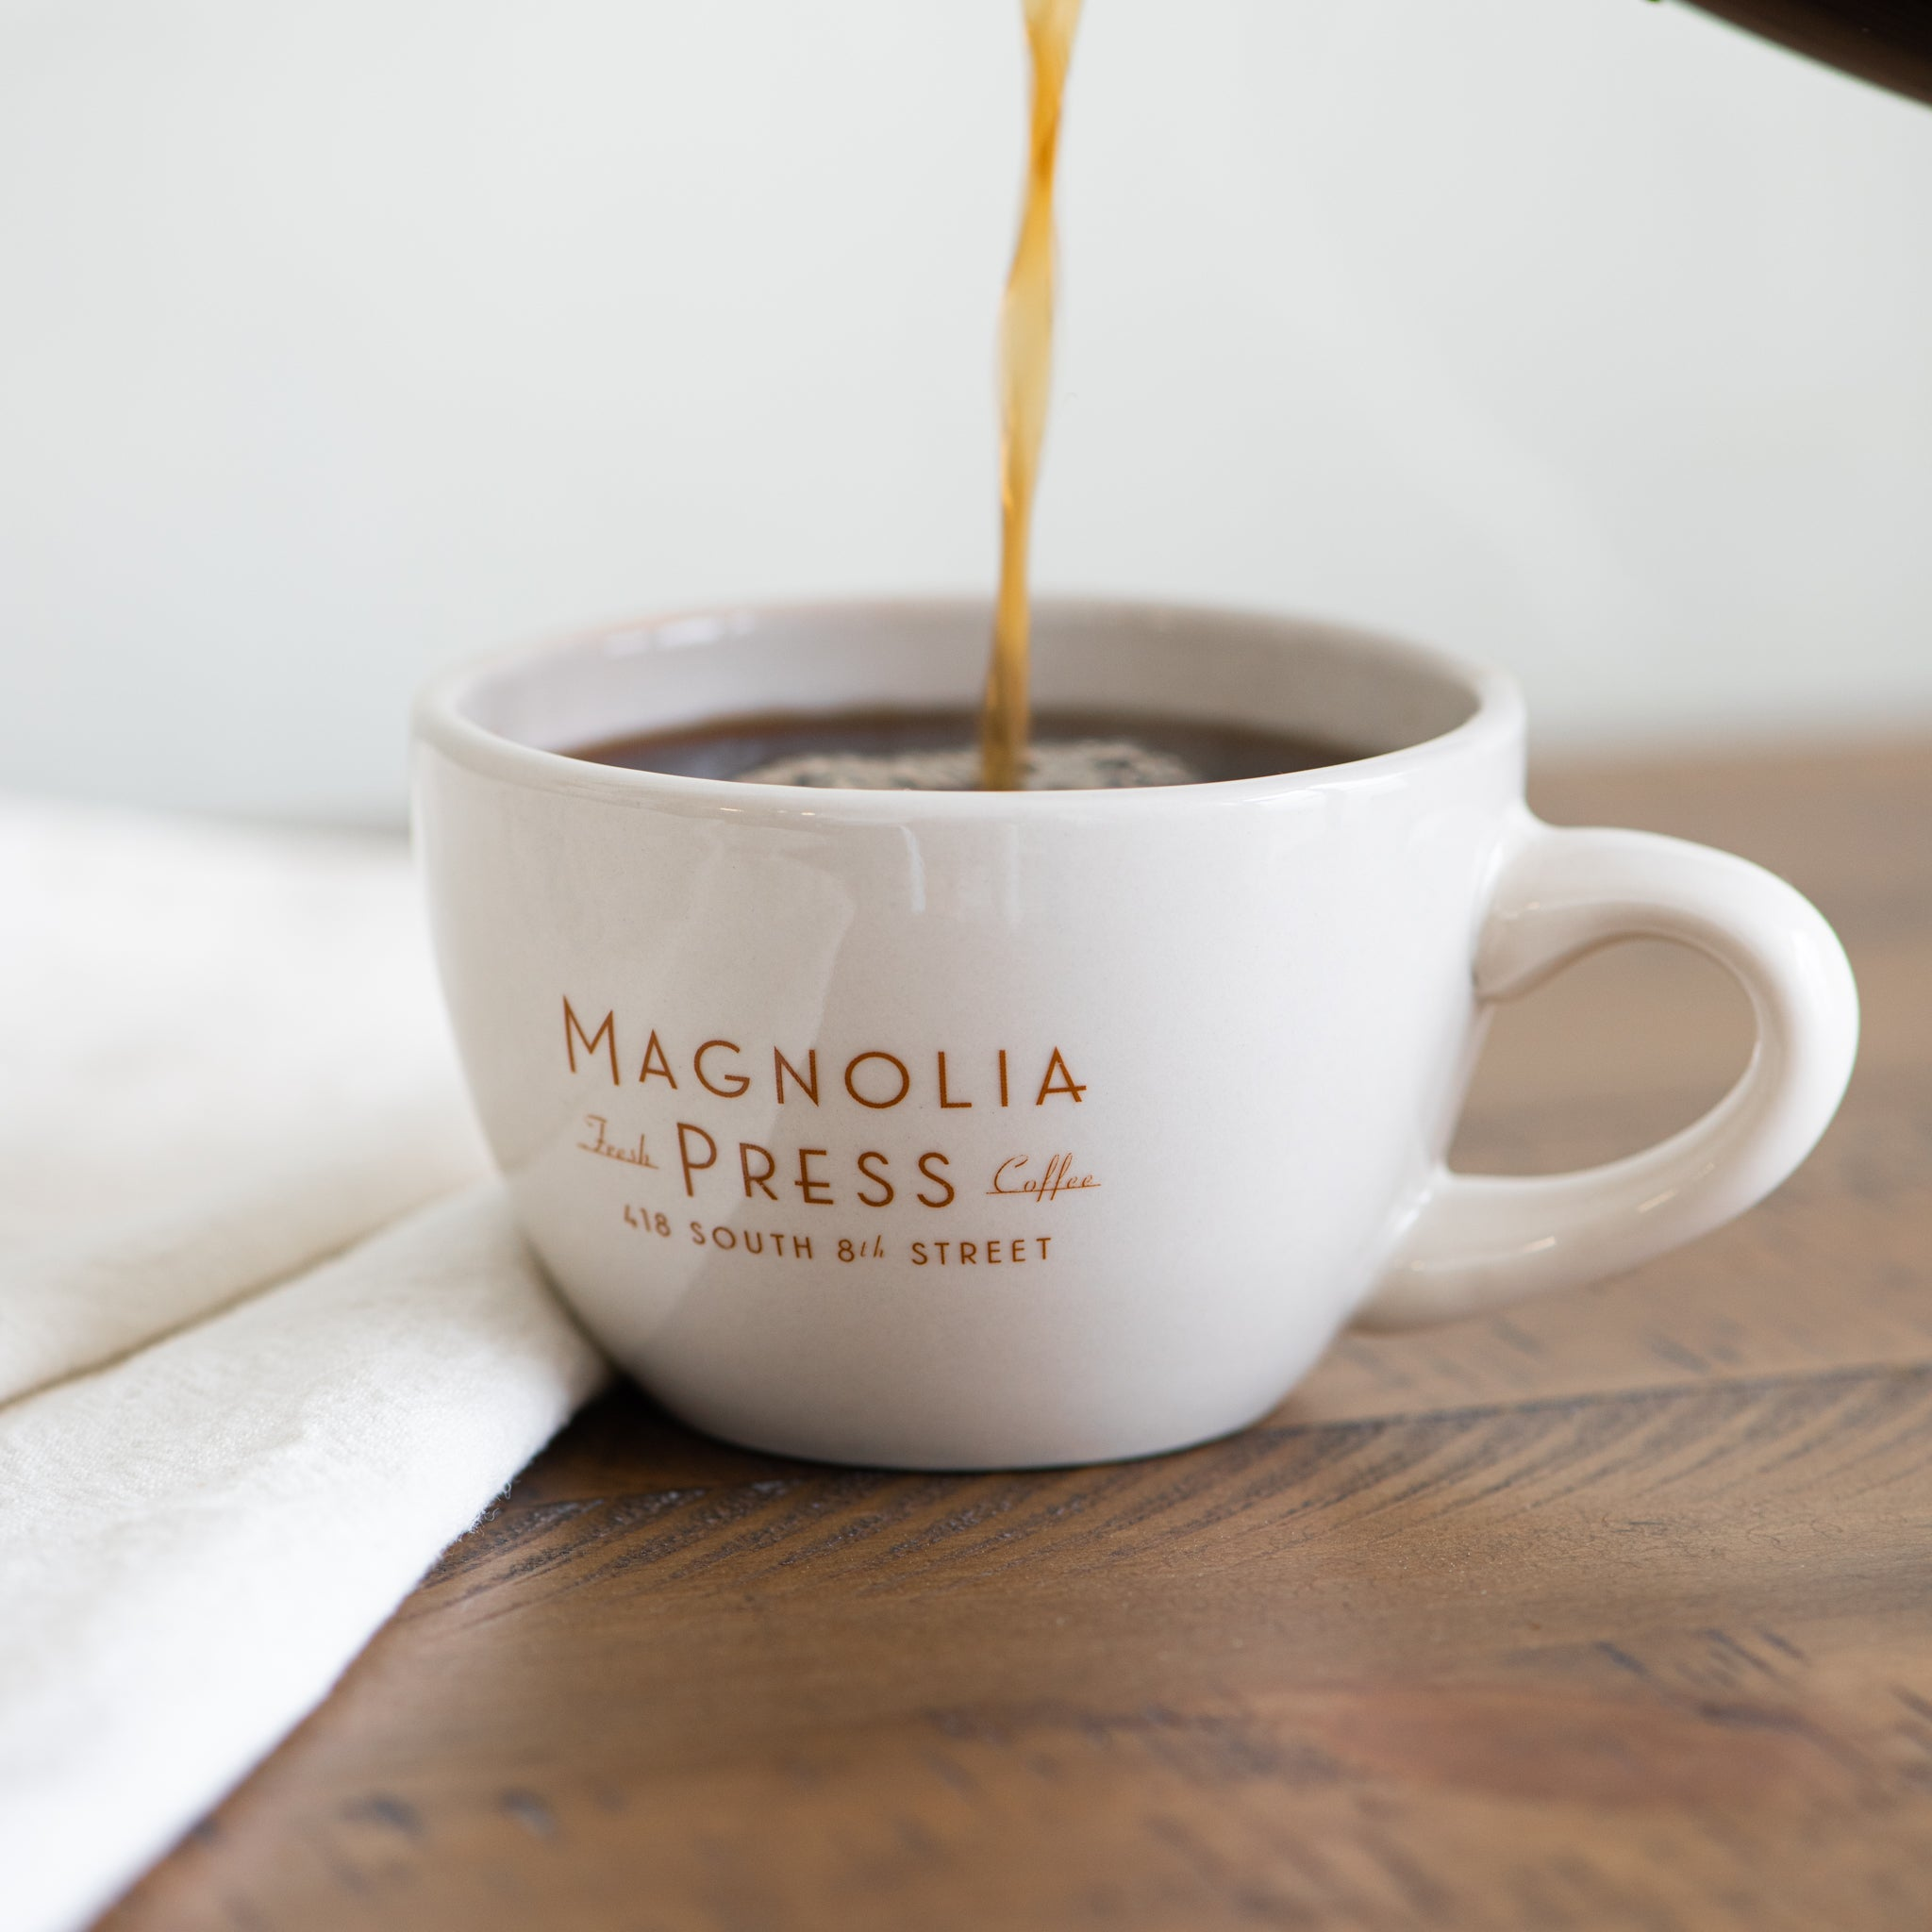 Magnolia Press Latte Mug Magnolia